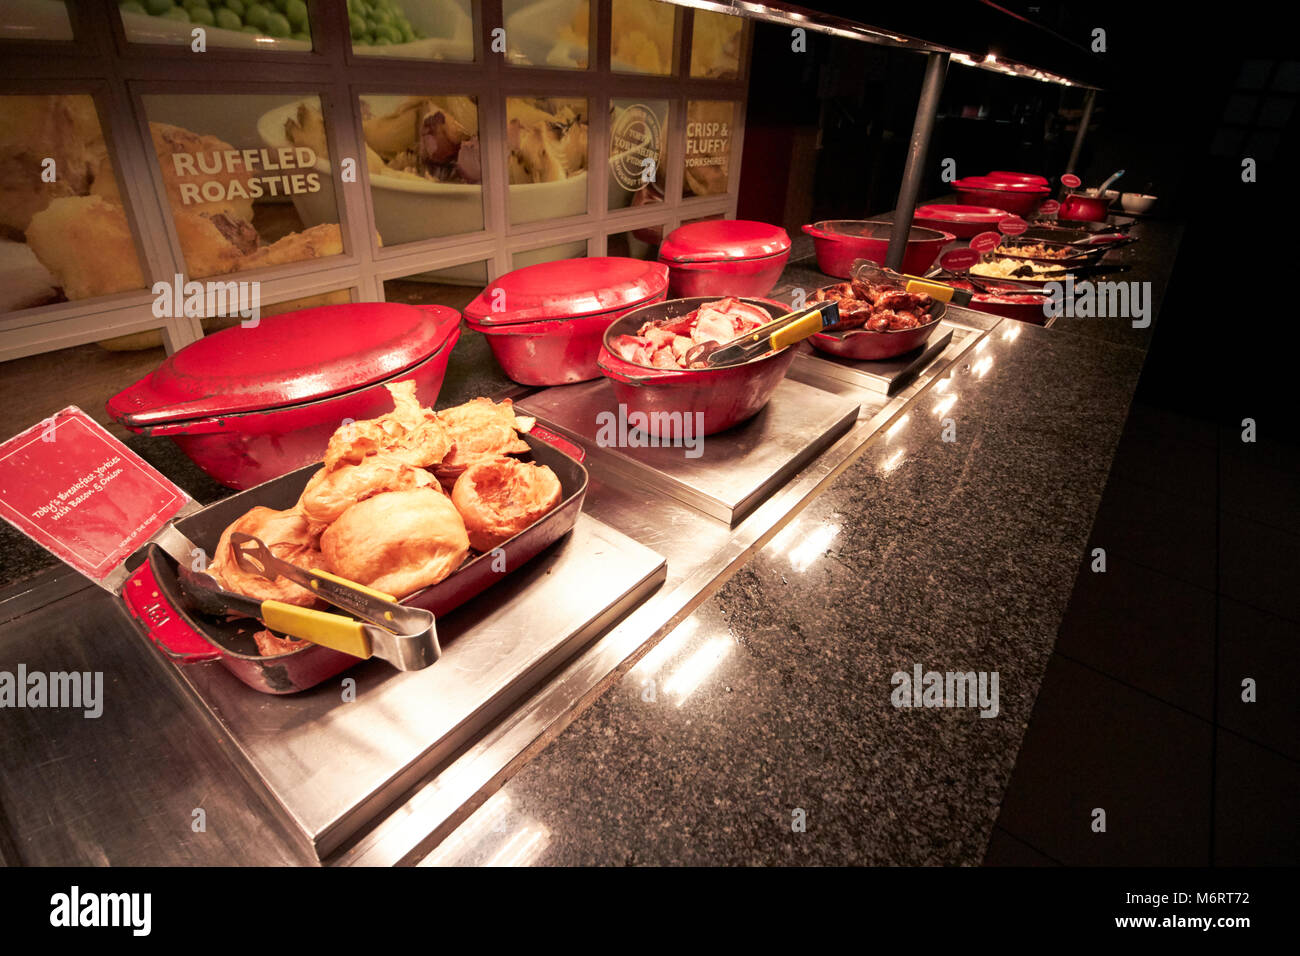 Carvery Buffet Stock Photos & Carvery Buffet Stock Images ...